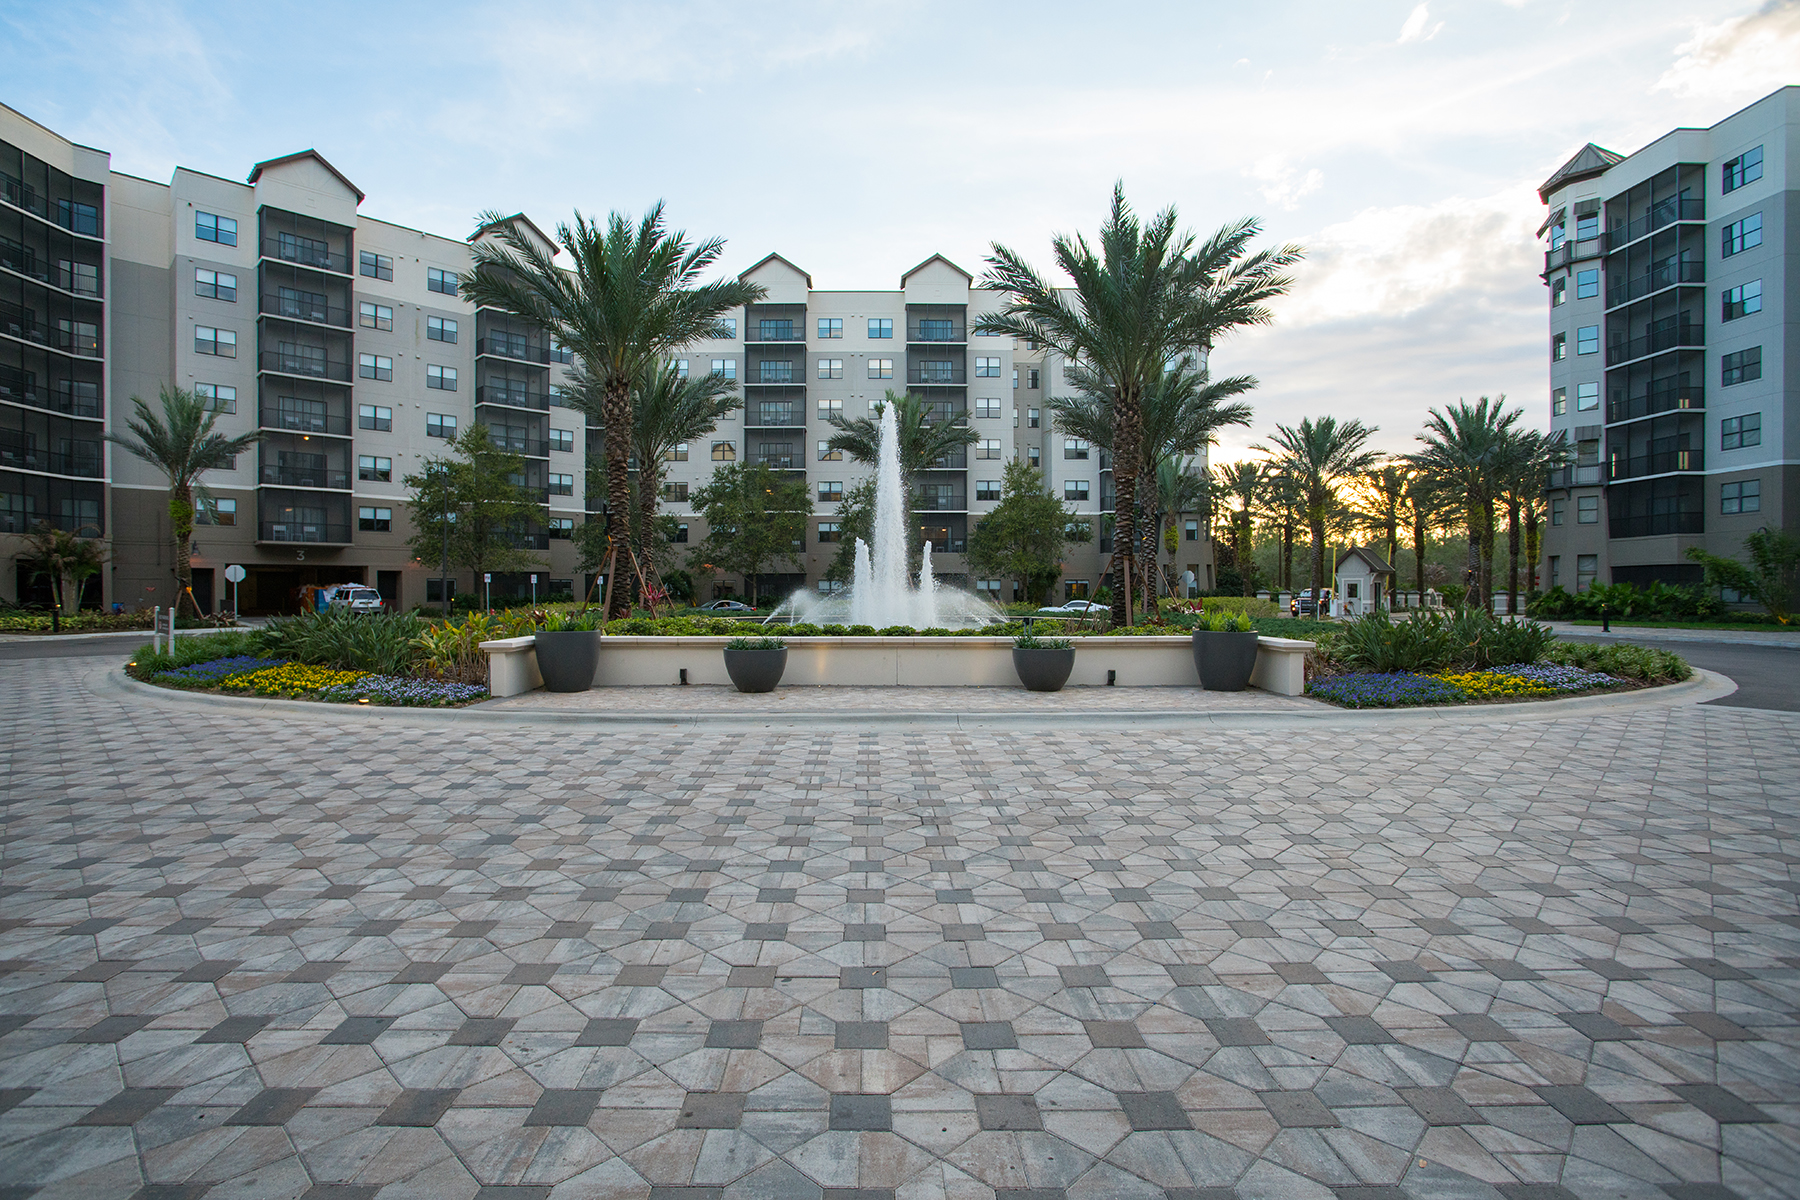 Condominium for Sale at 14501 Grove Resort Ave , 1515, Winter Garden, FL 3 14501 Grove Resort Ave 1515, Winter Garden, Florida 34787 United States